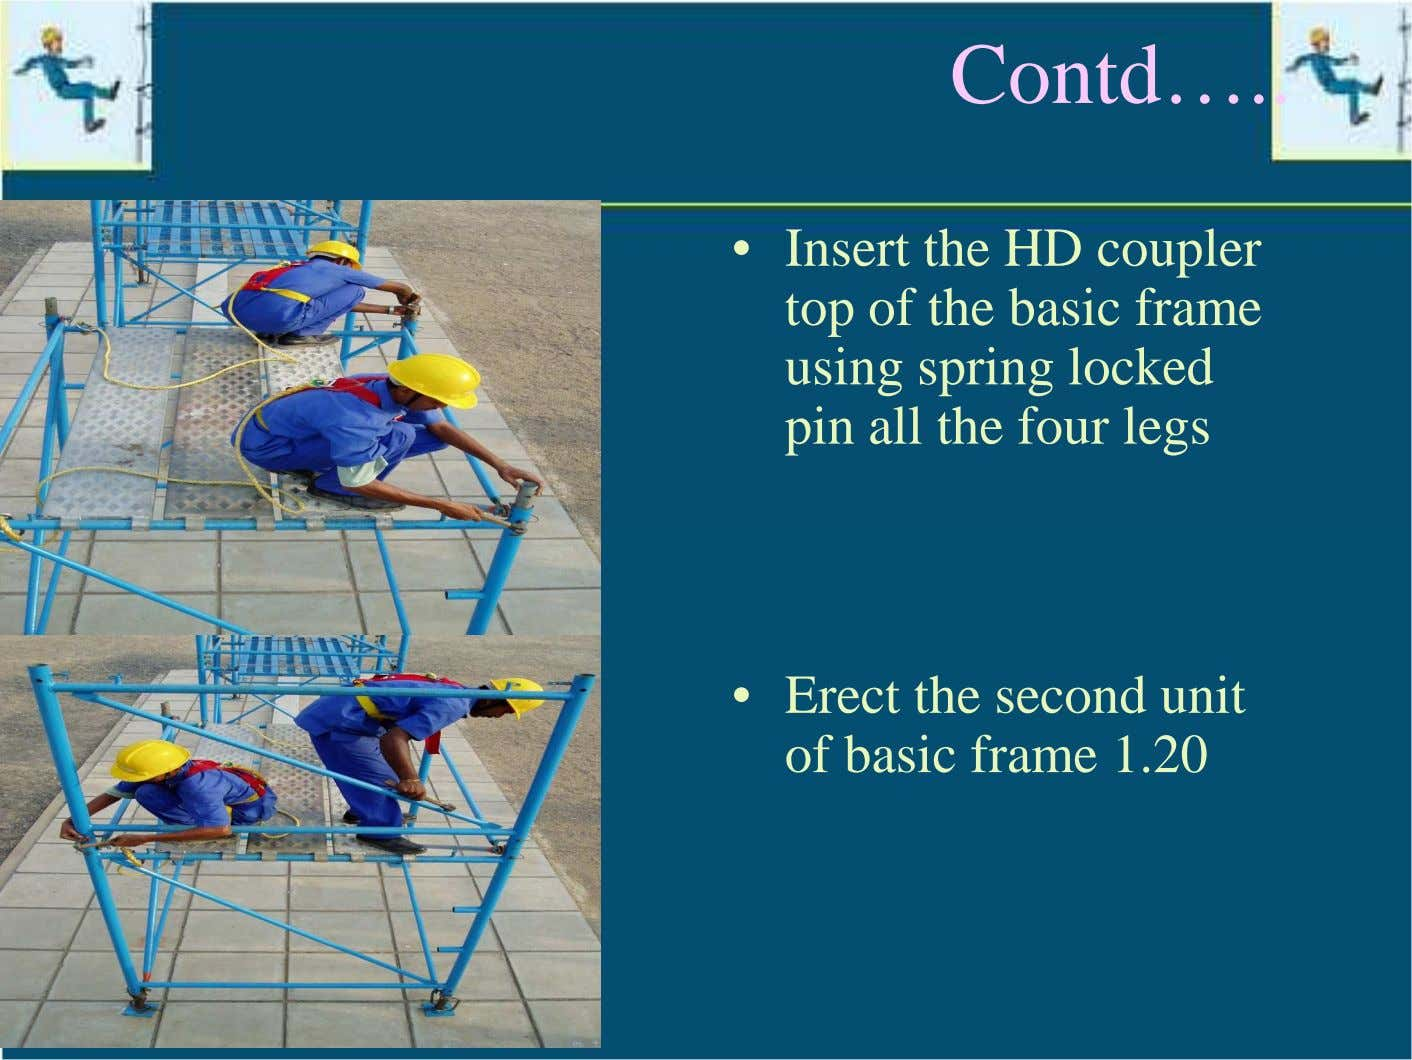 Contd… • Insert the HD coupler top of the basic frame using spring locked pin